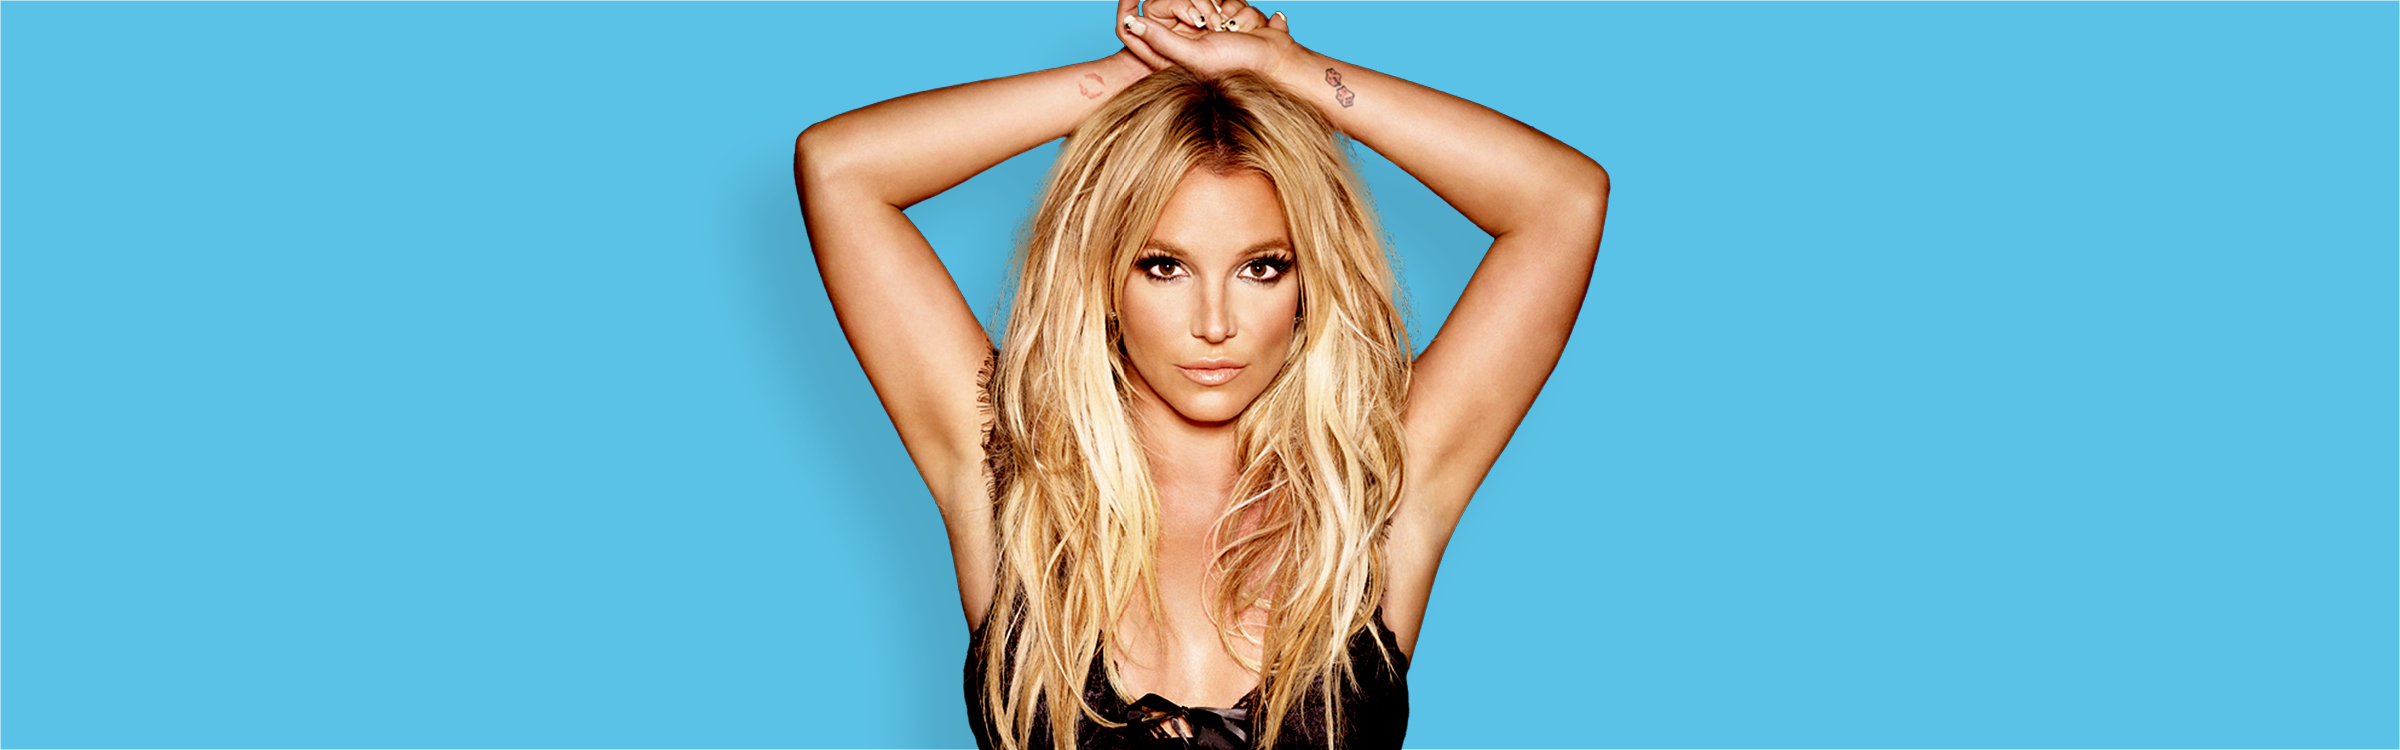 Q gl britney spears header 2400x750